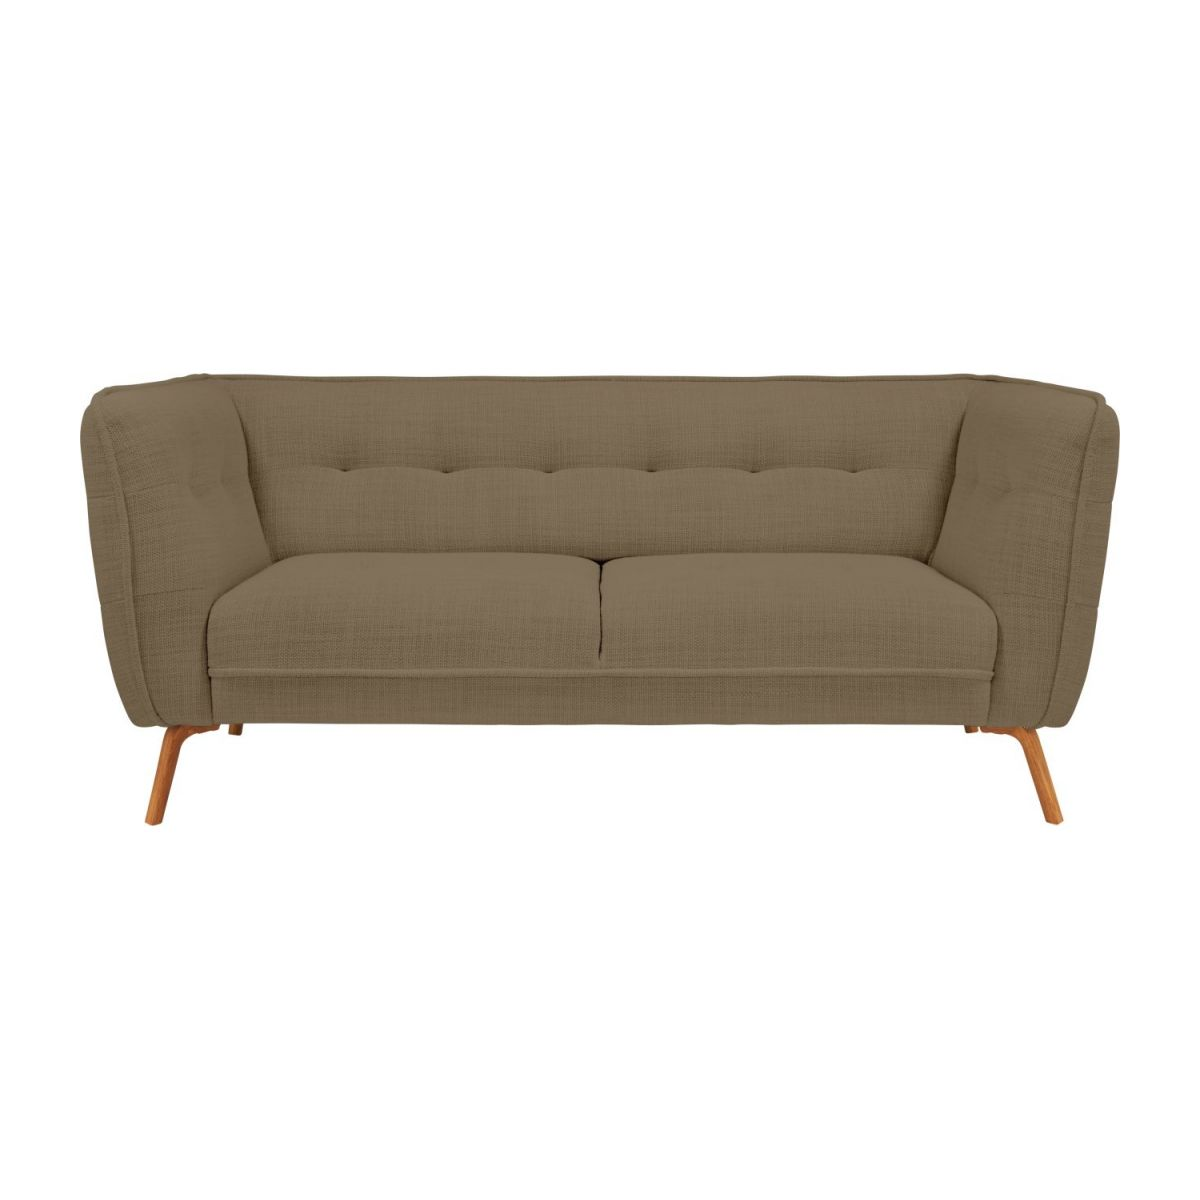 2 seater sofa in Fasoli fabric, jatoba brown and oak legs n°3